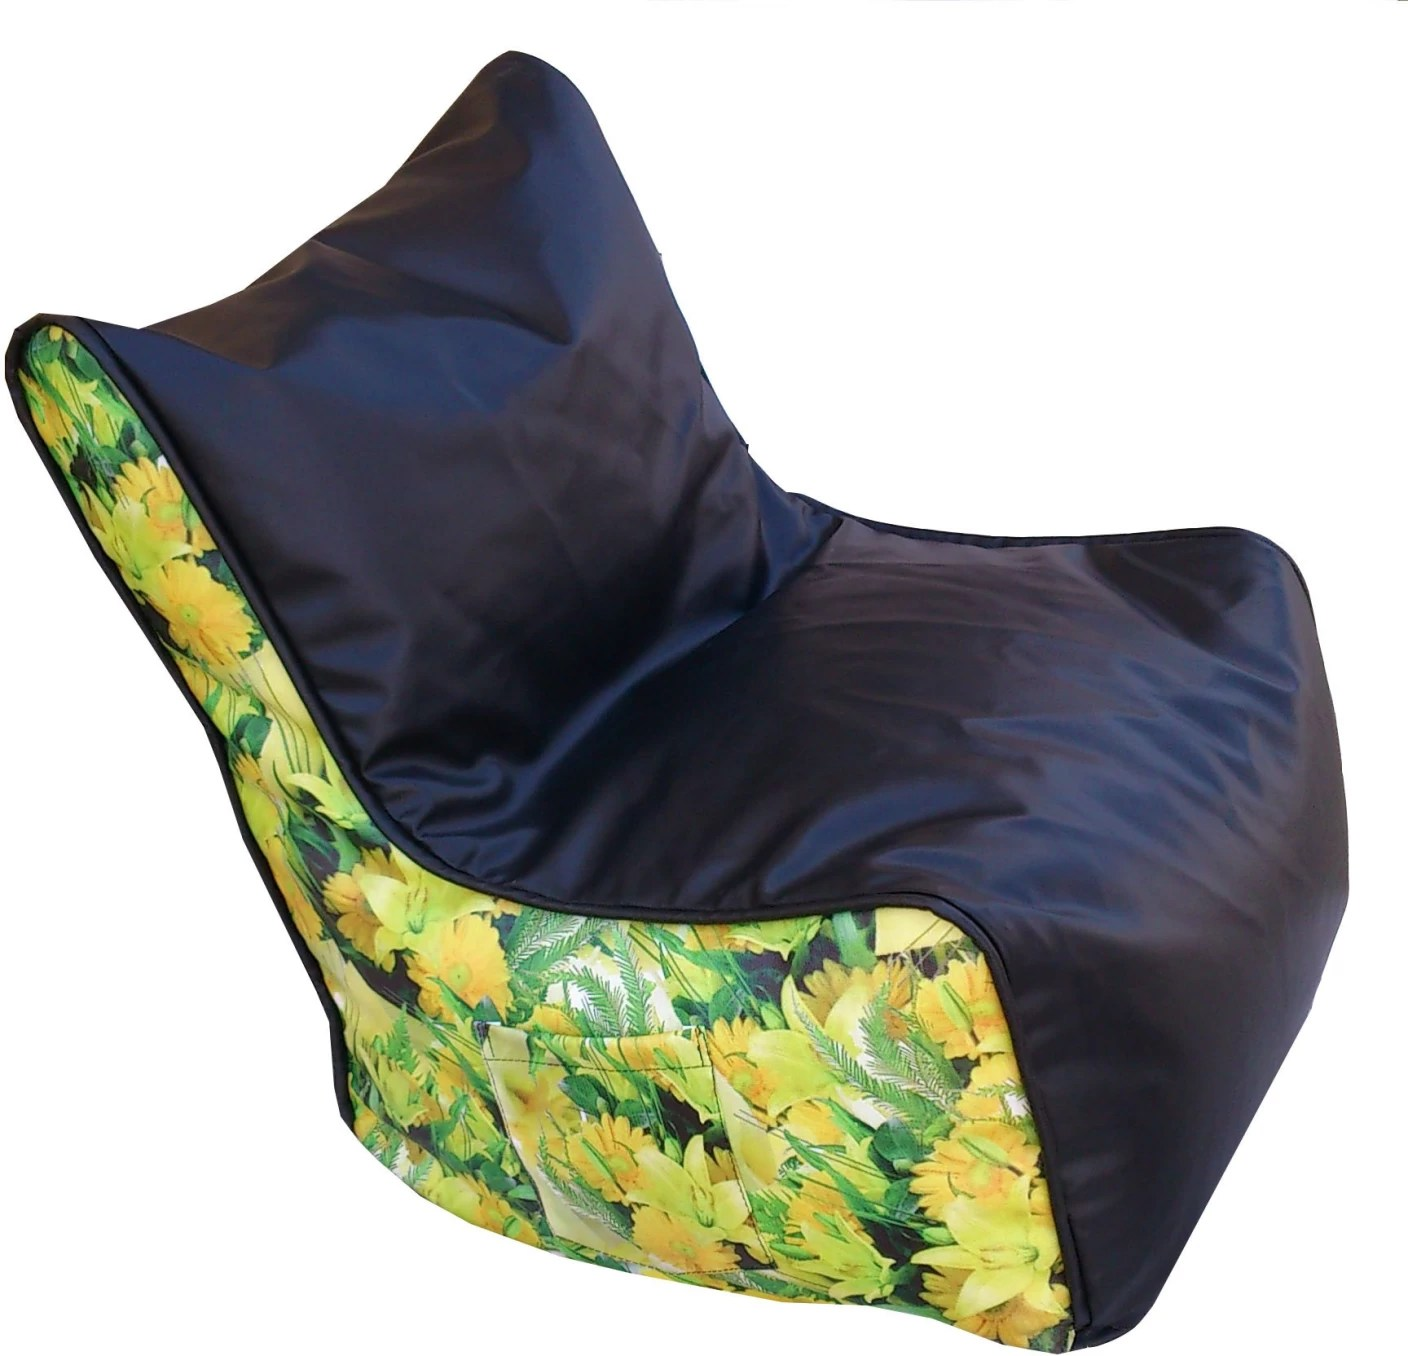 Xl Bean Bag Chair Avs Xl Bean Chair Cover Without Beans Price In India